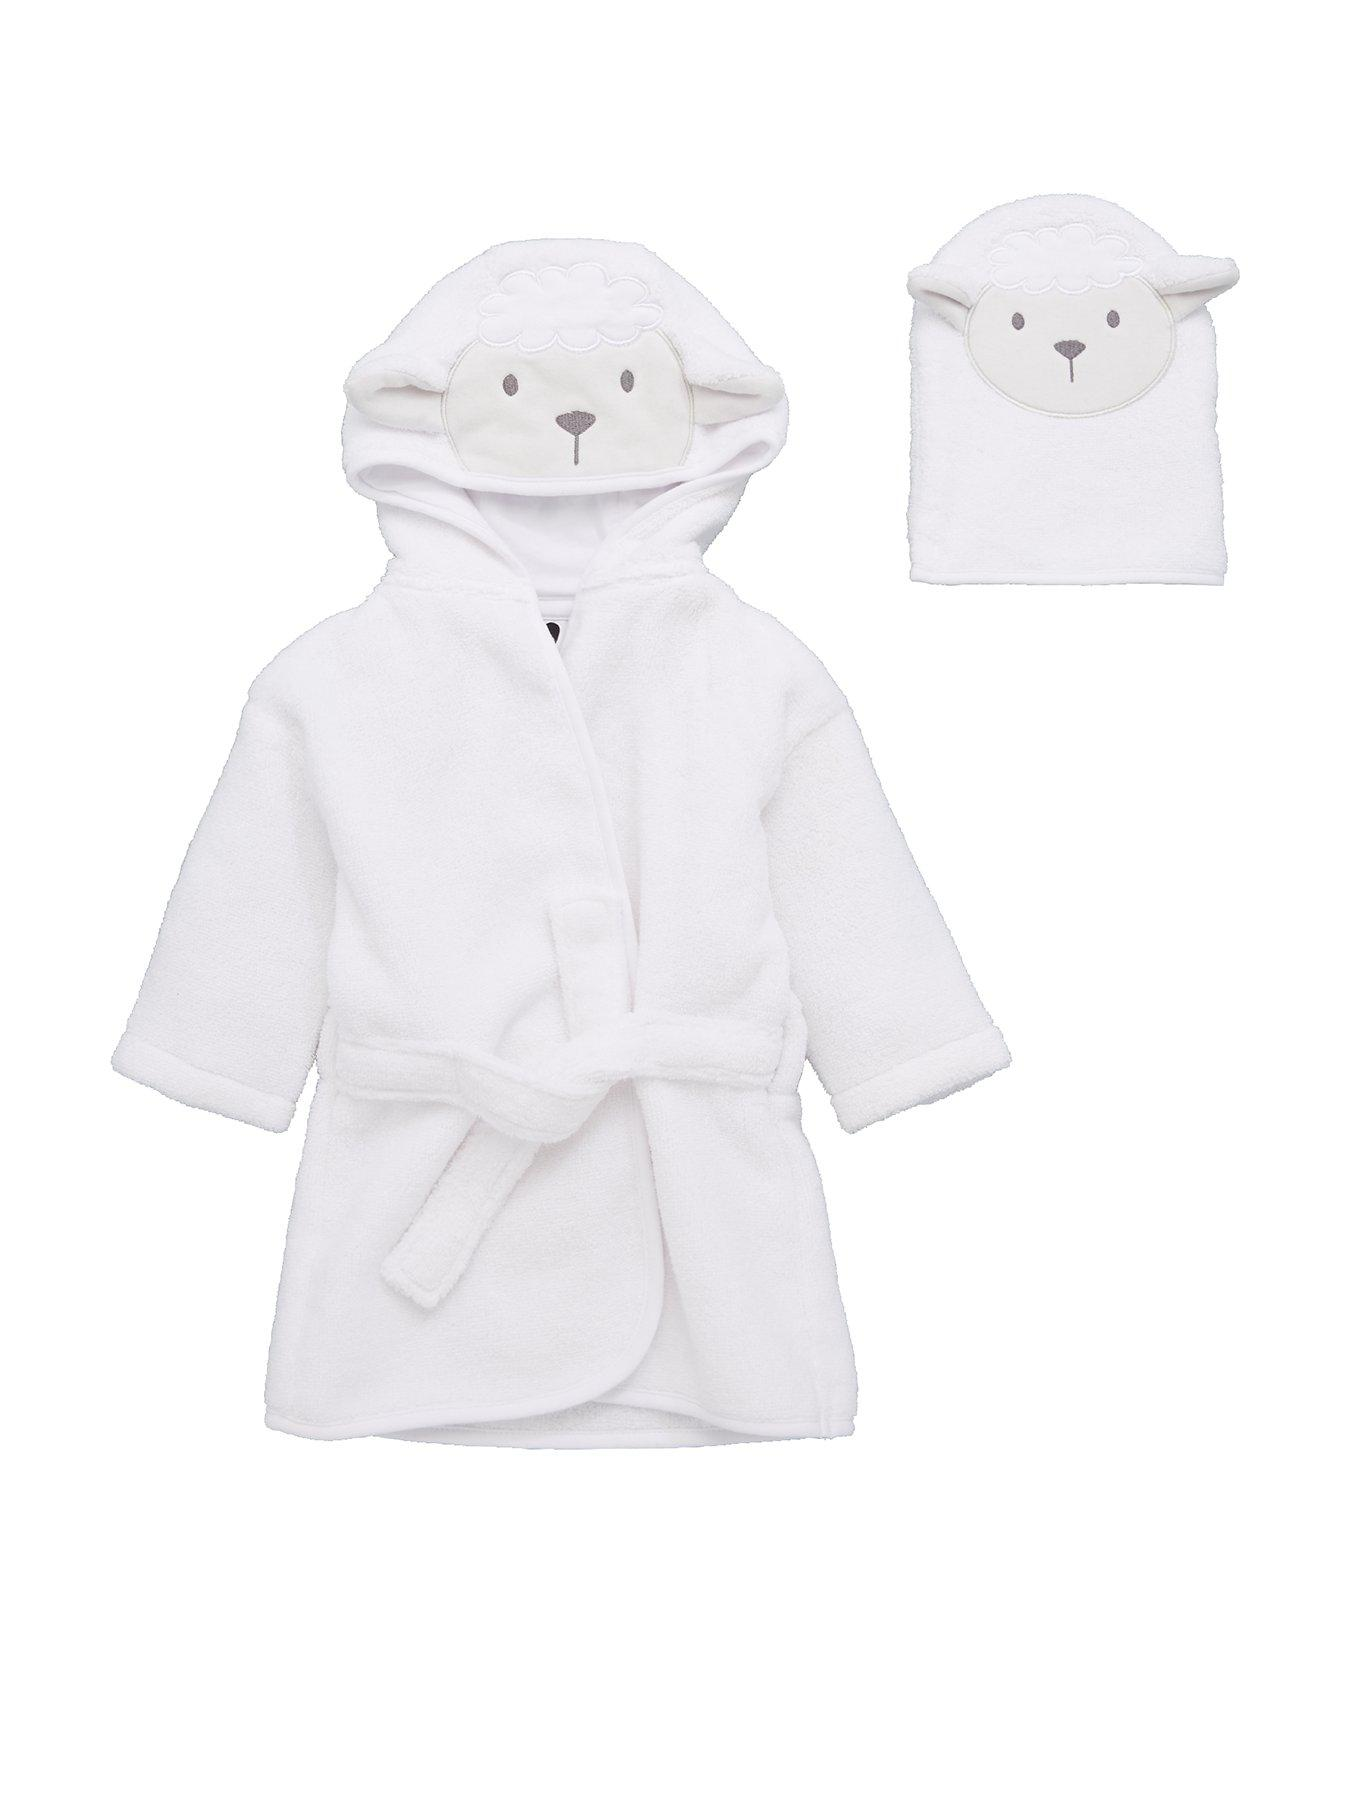 Joey Couture Baby Boys Robed Satin Design Christening Outfit